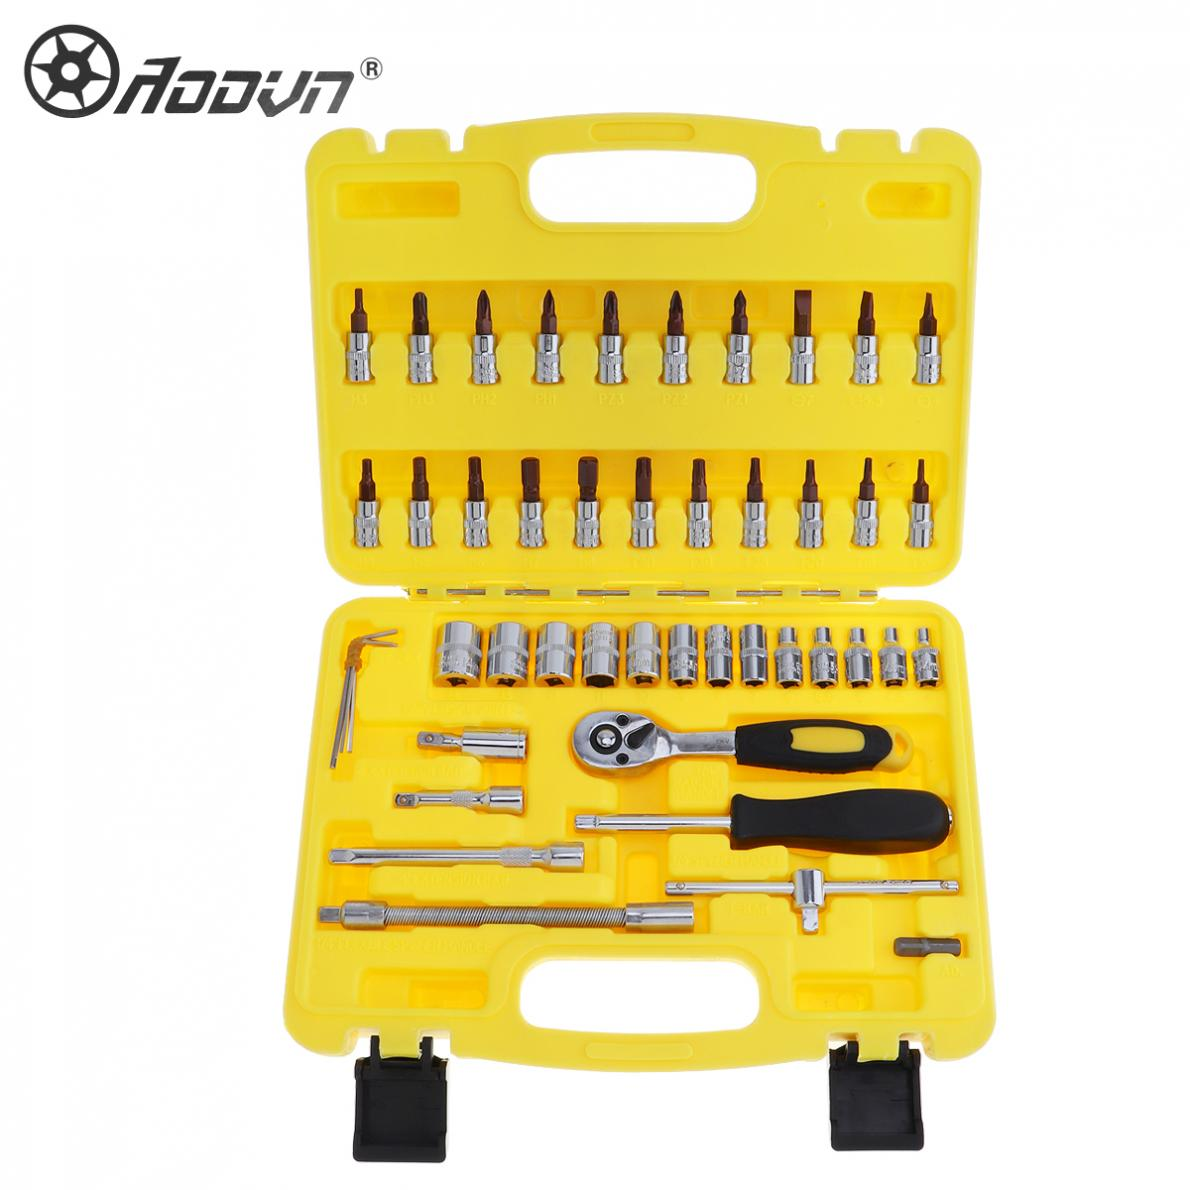 46pcs Repair Tool Box Precision 1/4 Sleeve Socket Wrench Set Ratchet Torque Wrench Tool Kit for Motorcycle / Auto Repairing veconor 46pc high quality socket set car repair tool ratchet set torque wrench combination bit a set of keys chrome vanadium